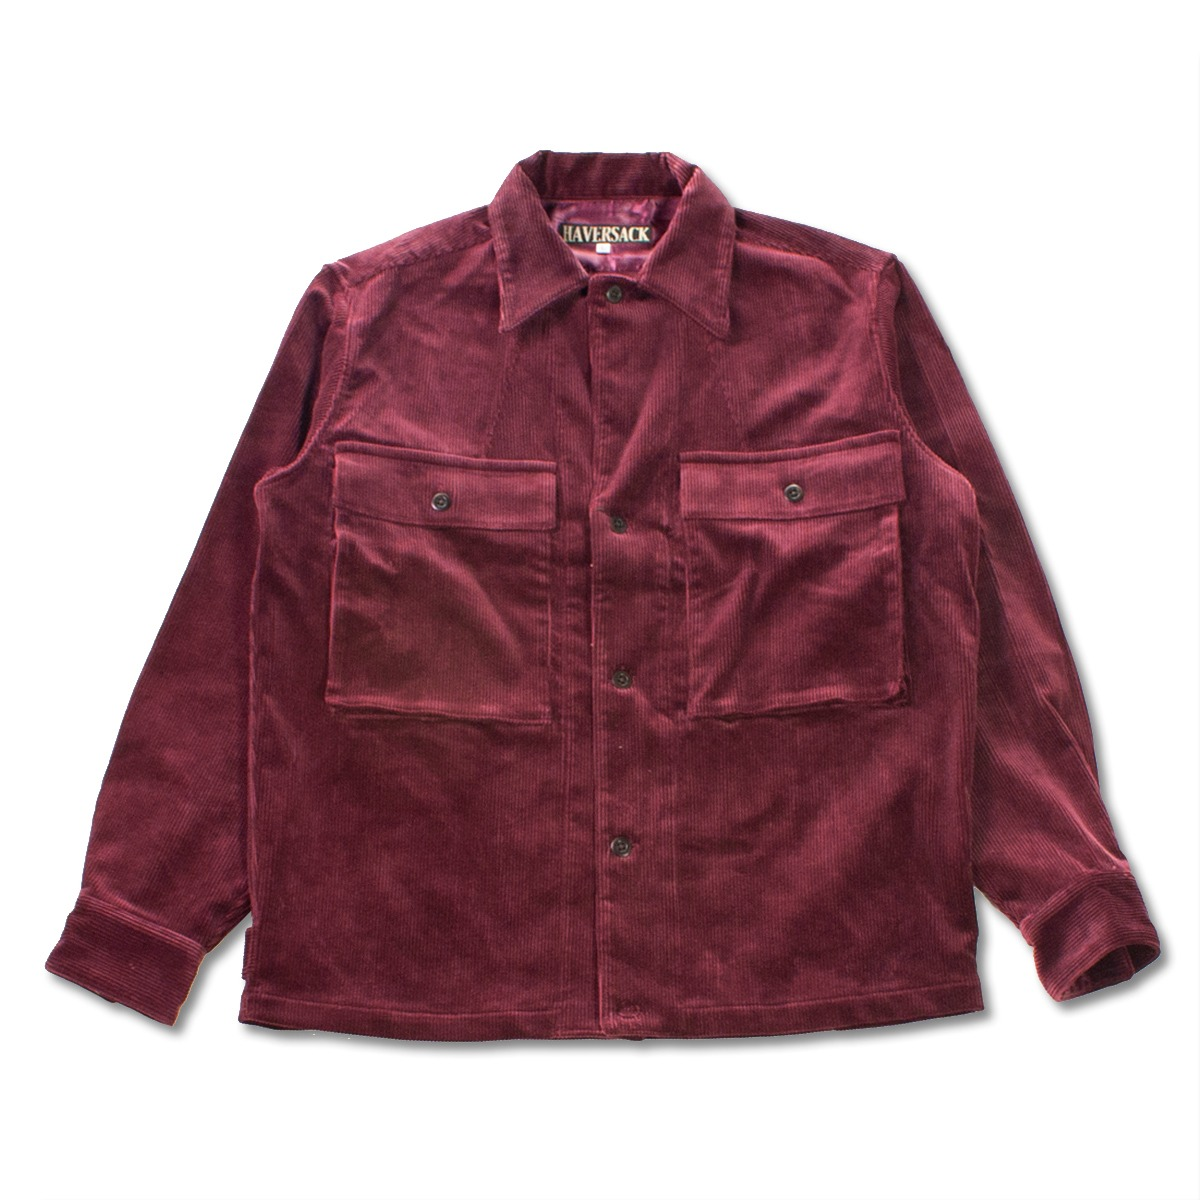 [HAVERSACK] CORDUROY SHIRT JACKET 'BURGUNDY'